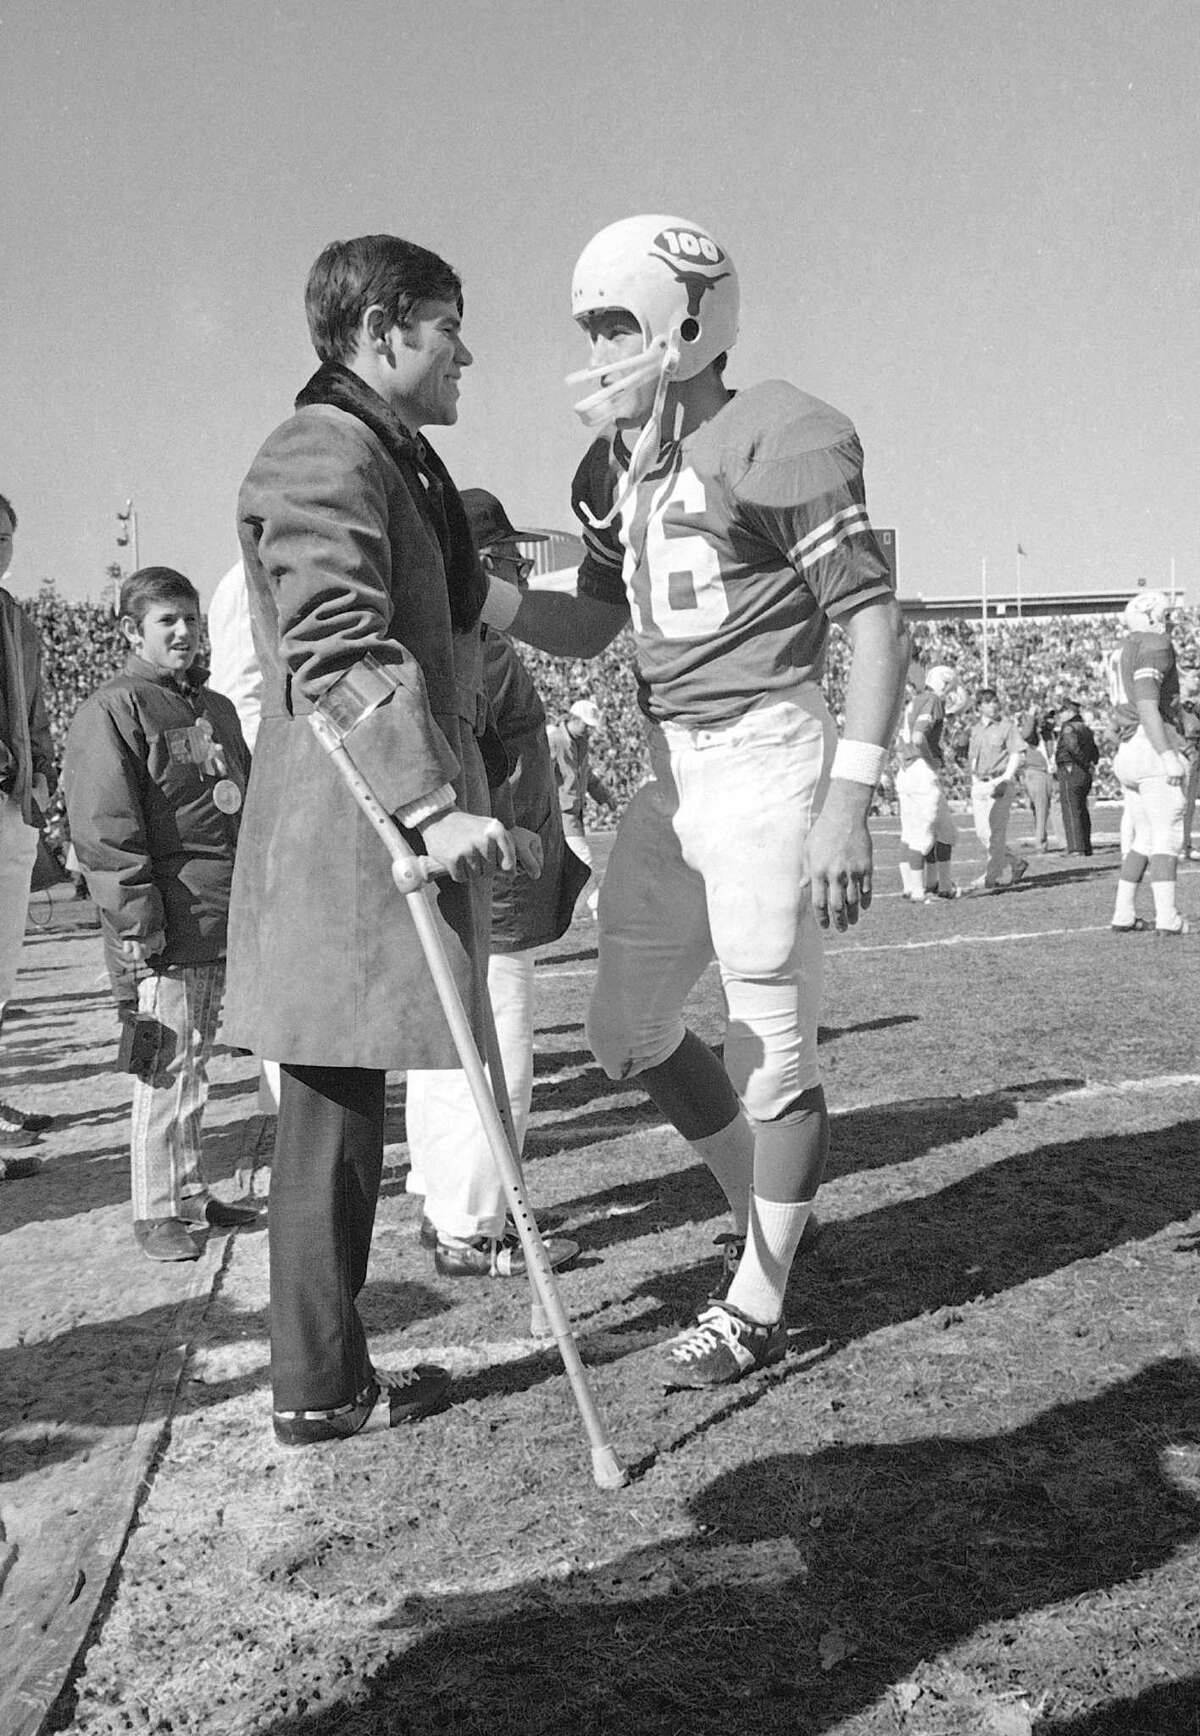 Freddie Steinmark, University of Texas football star who lost his left leg to cancer, chats with Texas quarterback James Street on the sidelines before the start of the Notre Dame-Texas Cotton Bowl game in Dallas, Jan. 1, 1970. Steinmark left the hospital in Houston to attend the game. (AP Photo)